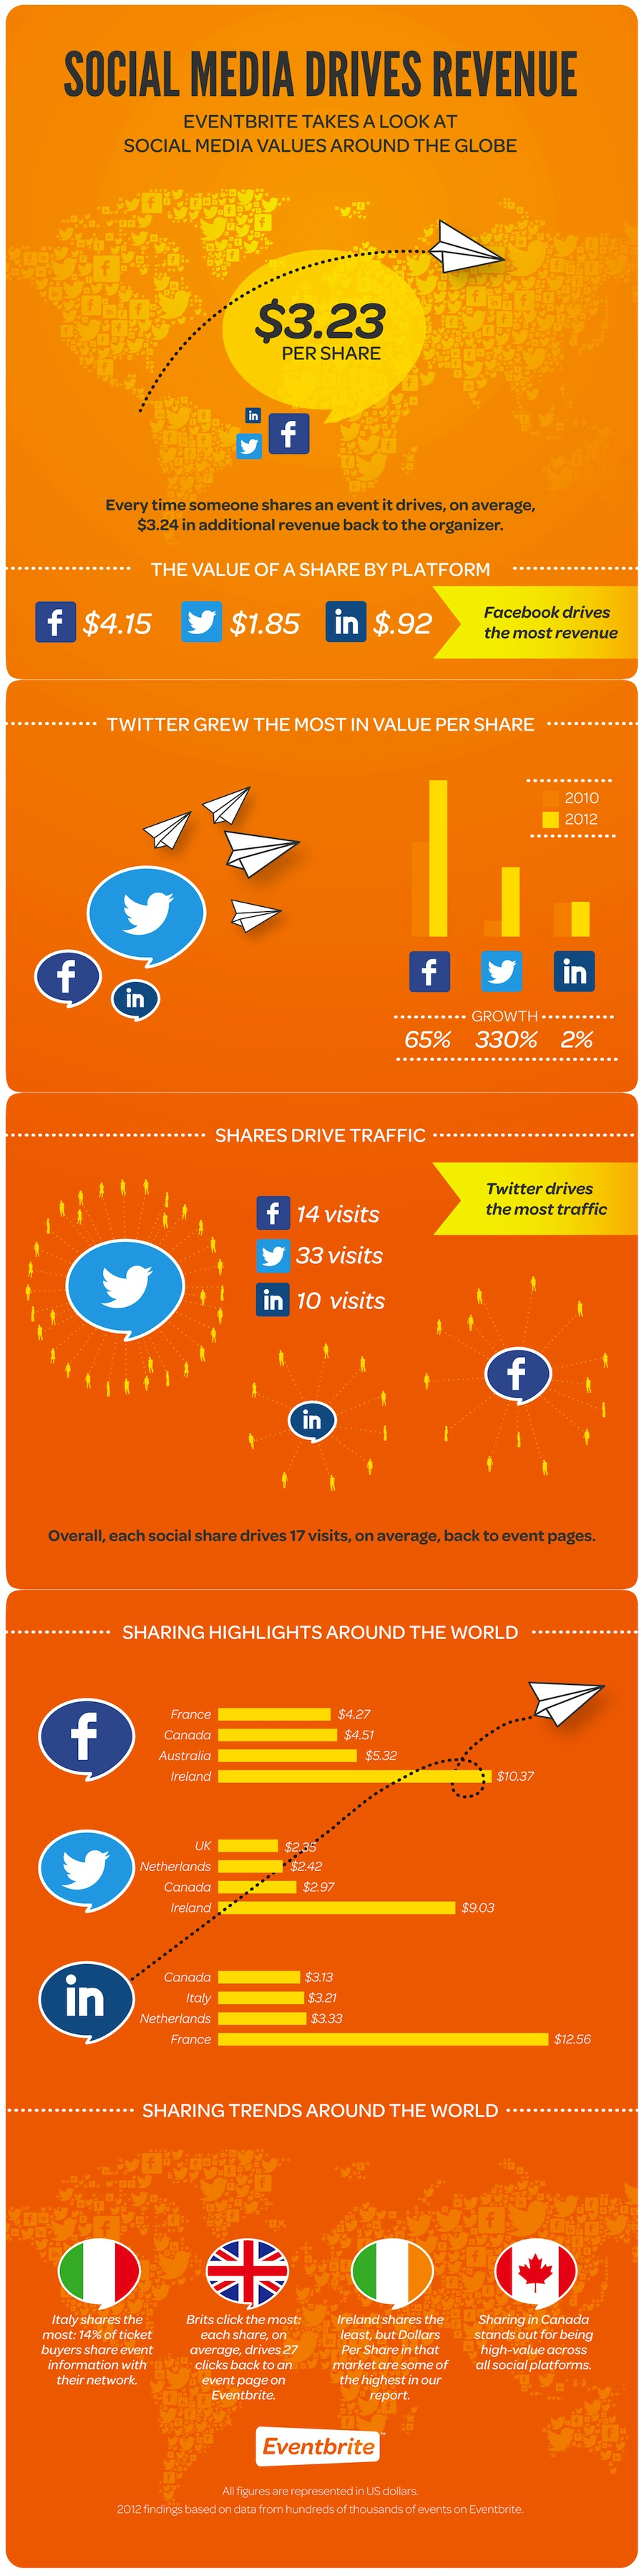 Eventbrite infographic